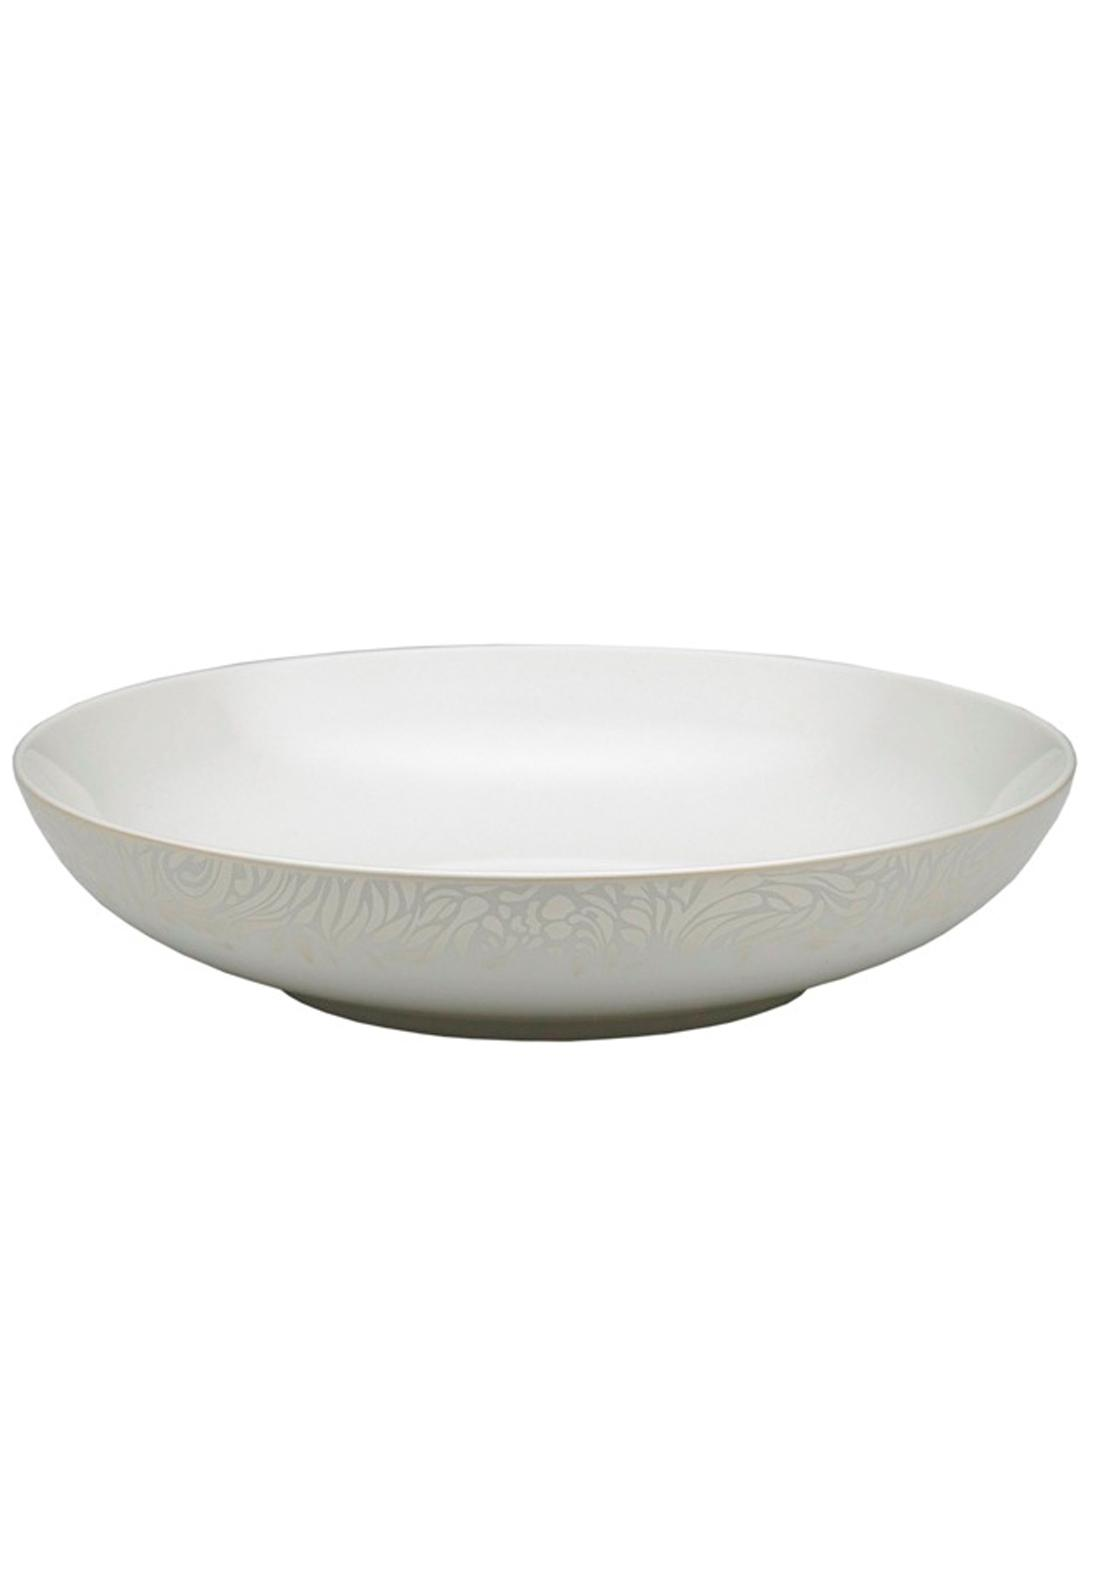 Denby Monsoon Lucille Gold Pasta Bowl